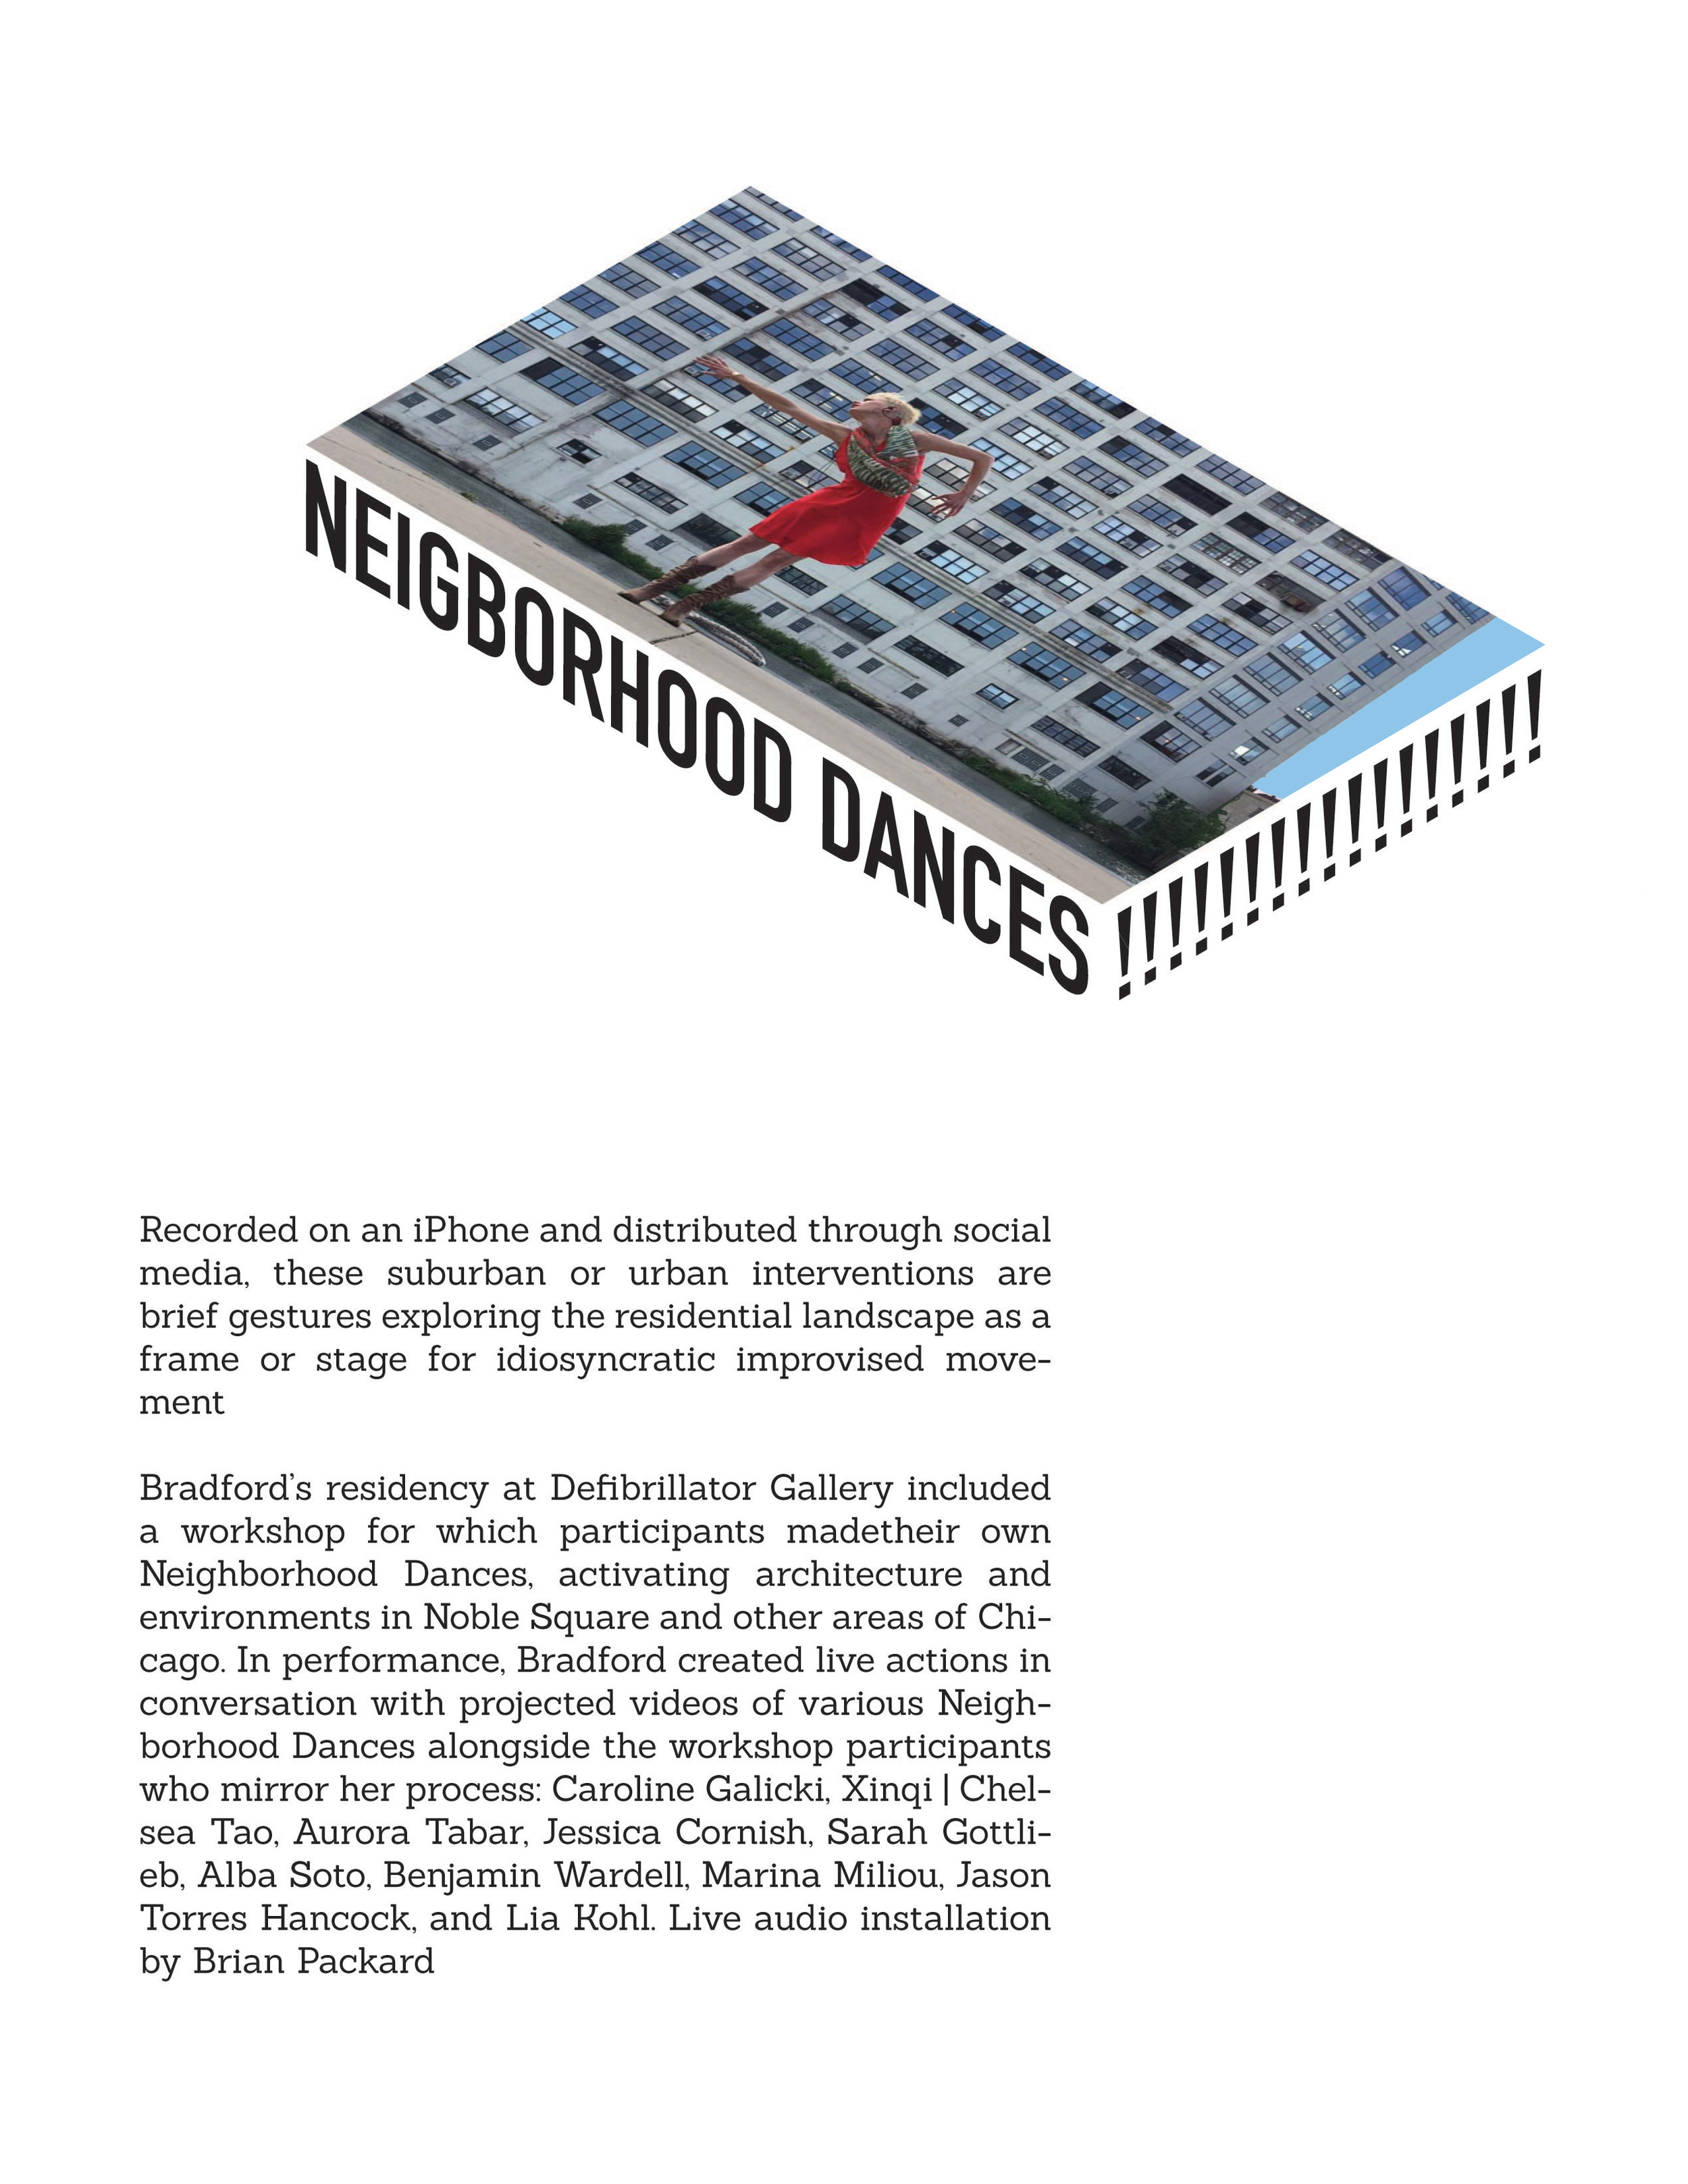 Placard for Victoria Bradford's  Neighborhood Dances  (featured at the MCA) for Defibrillator Gallery; 2015;  role: designer;  This poster employed isometrics to replicate the conditions of the artist's performances, which blended the body with surrounding architecture and space.